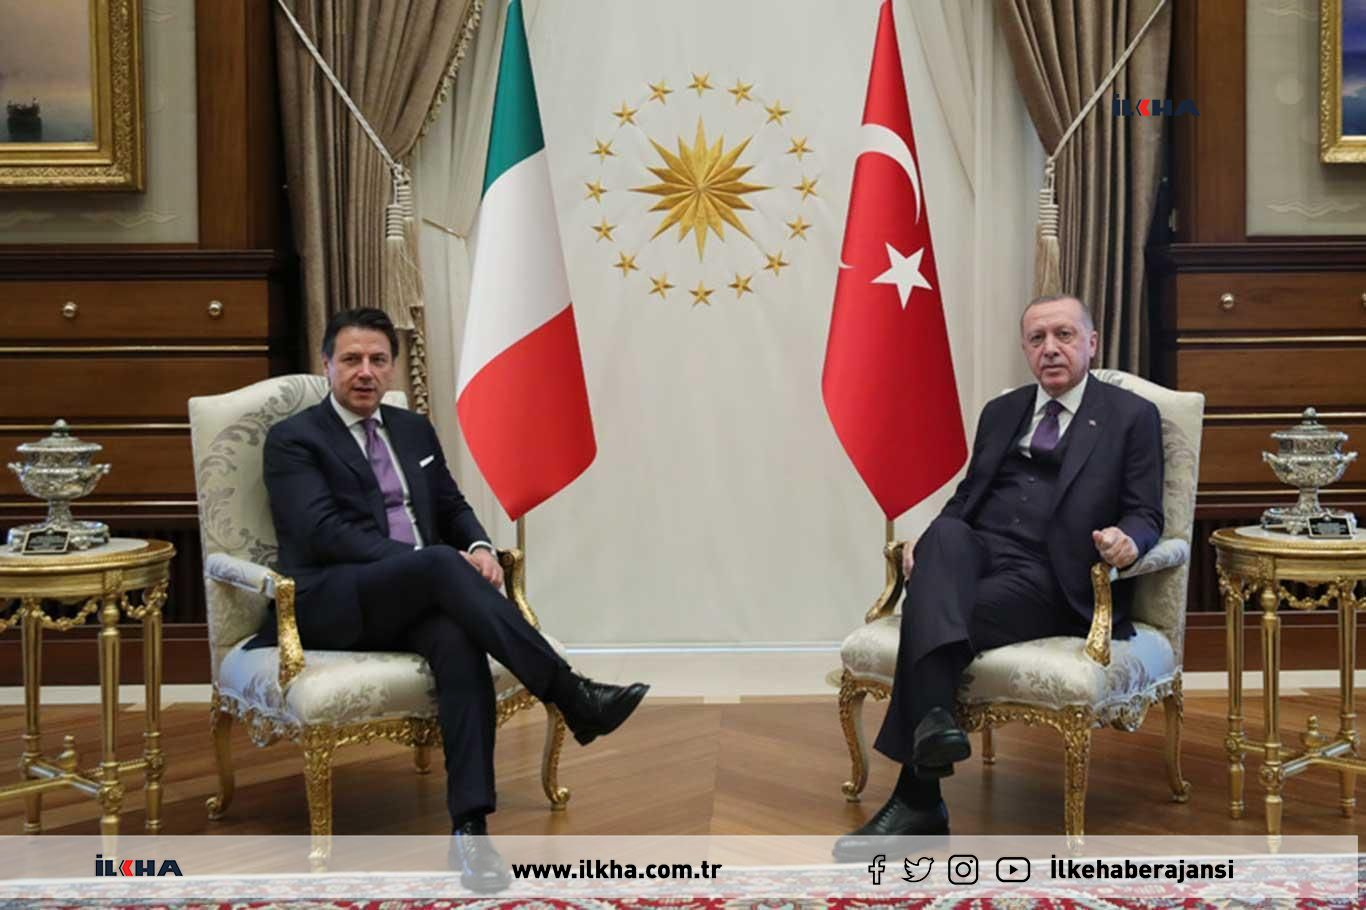 Erdoğan meets with Prime Minister Conte of Italy